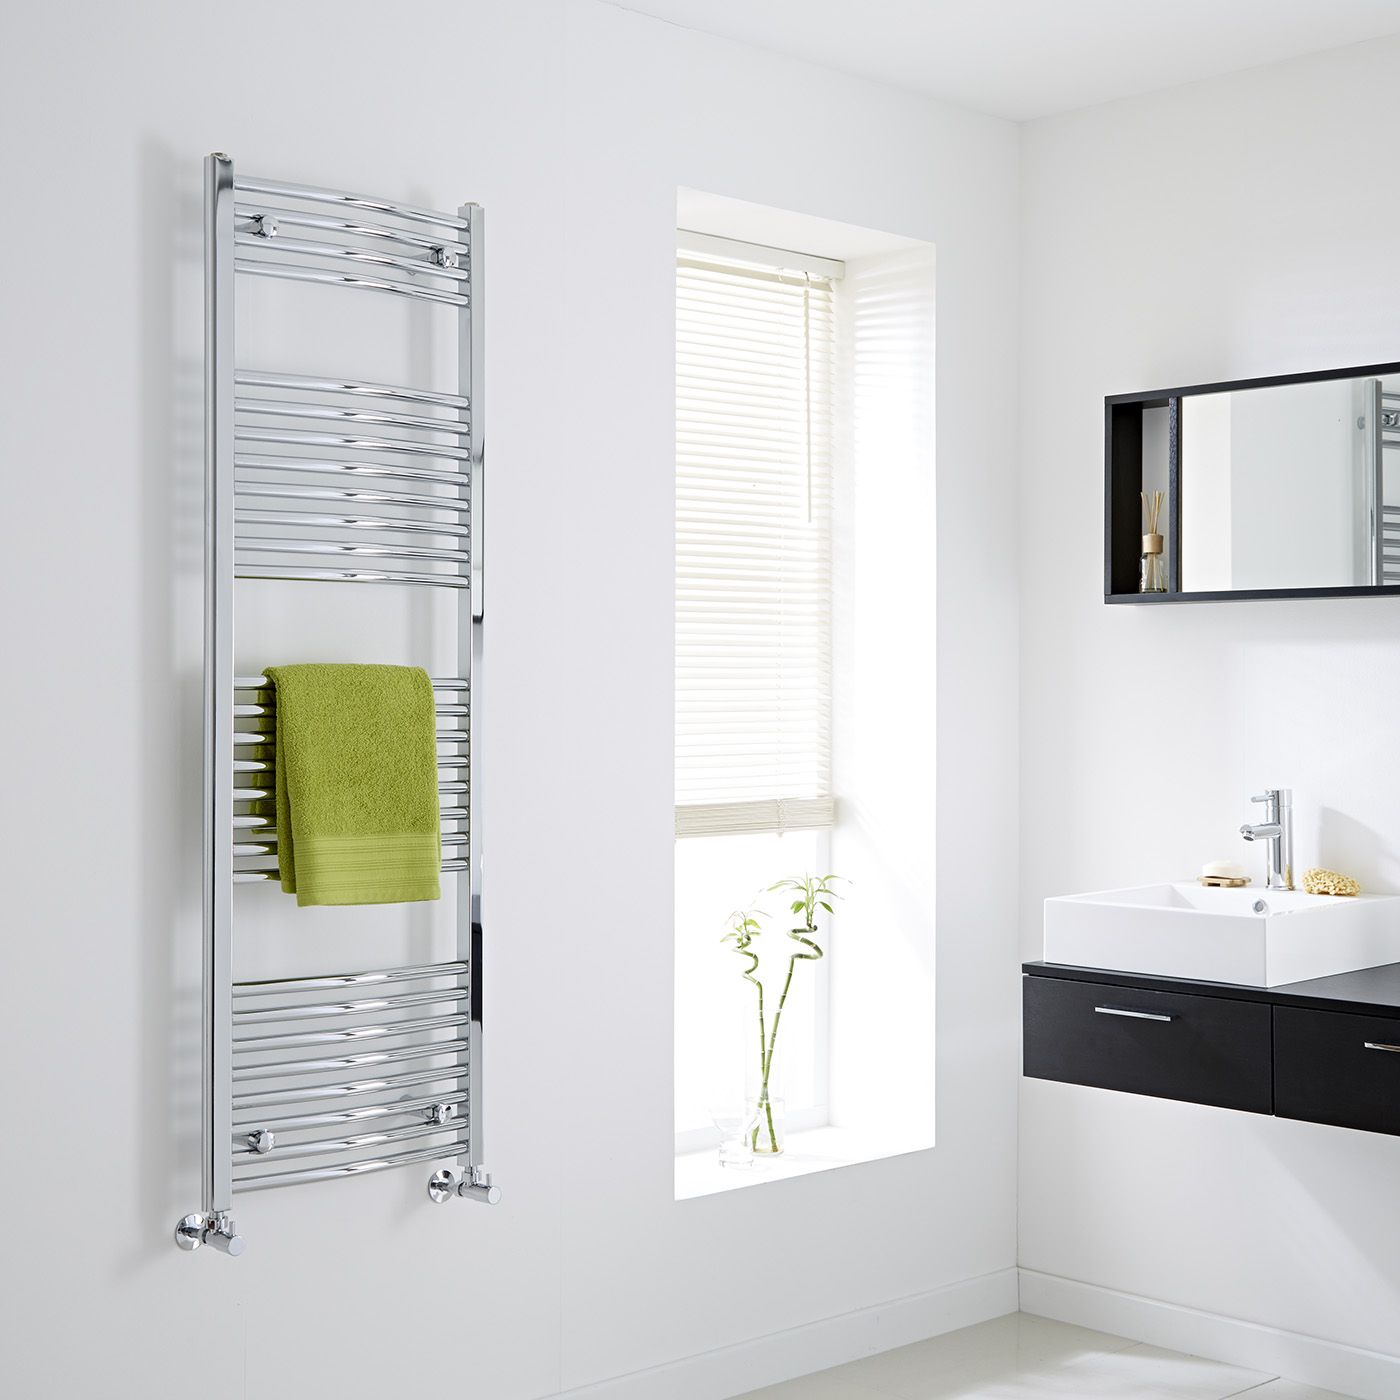 The Milano Ribble Curved heated Towel Rail gloriously gleaming on the wall of a bathroom